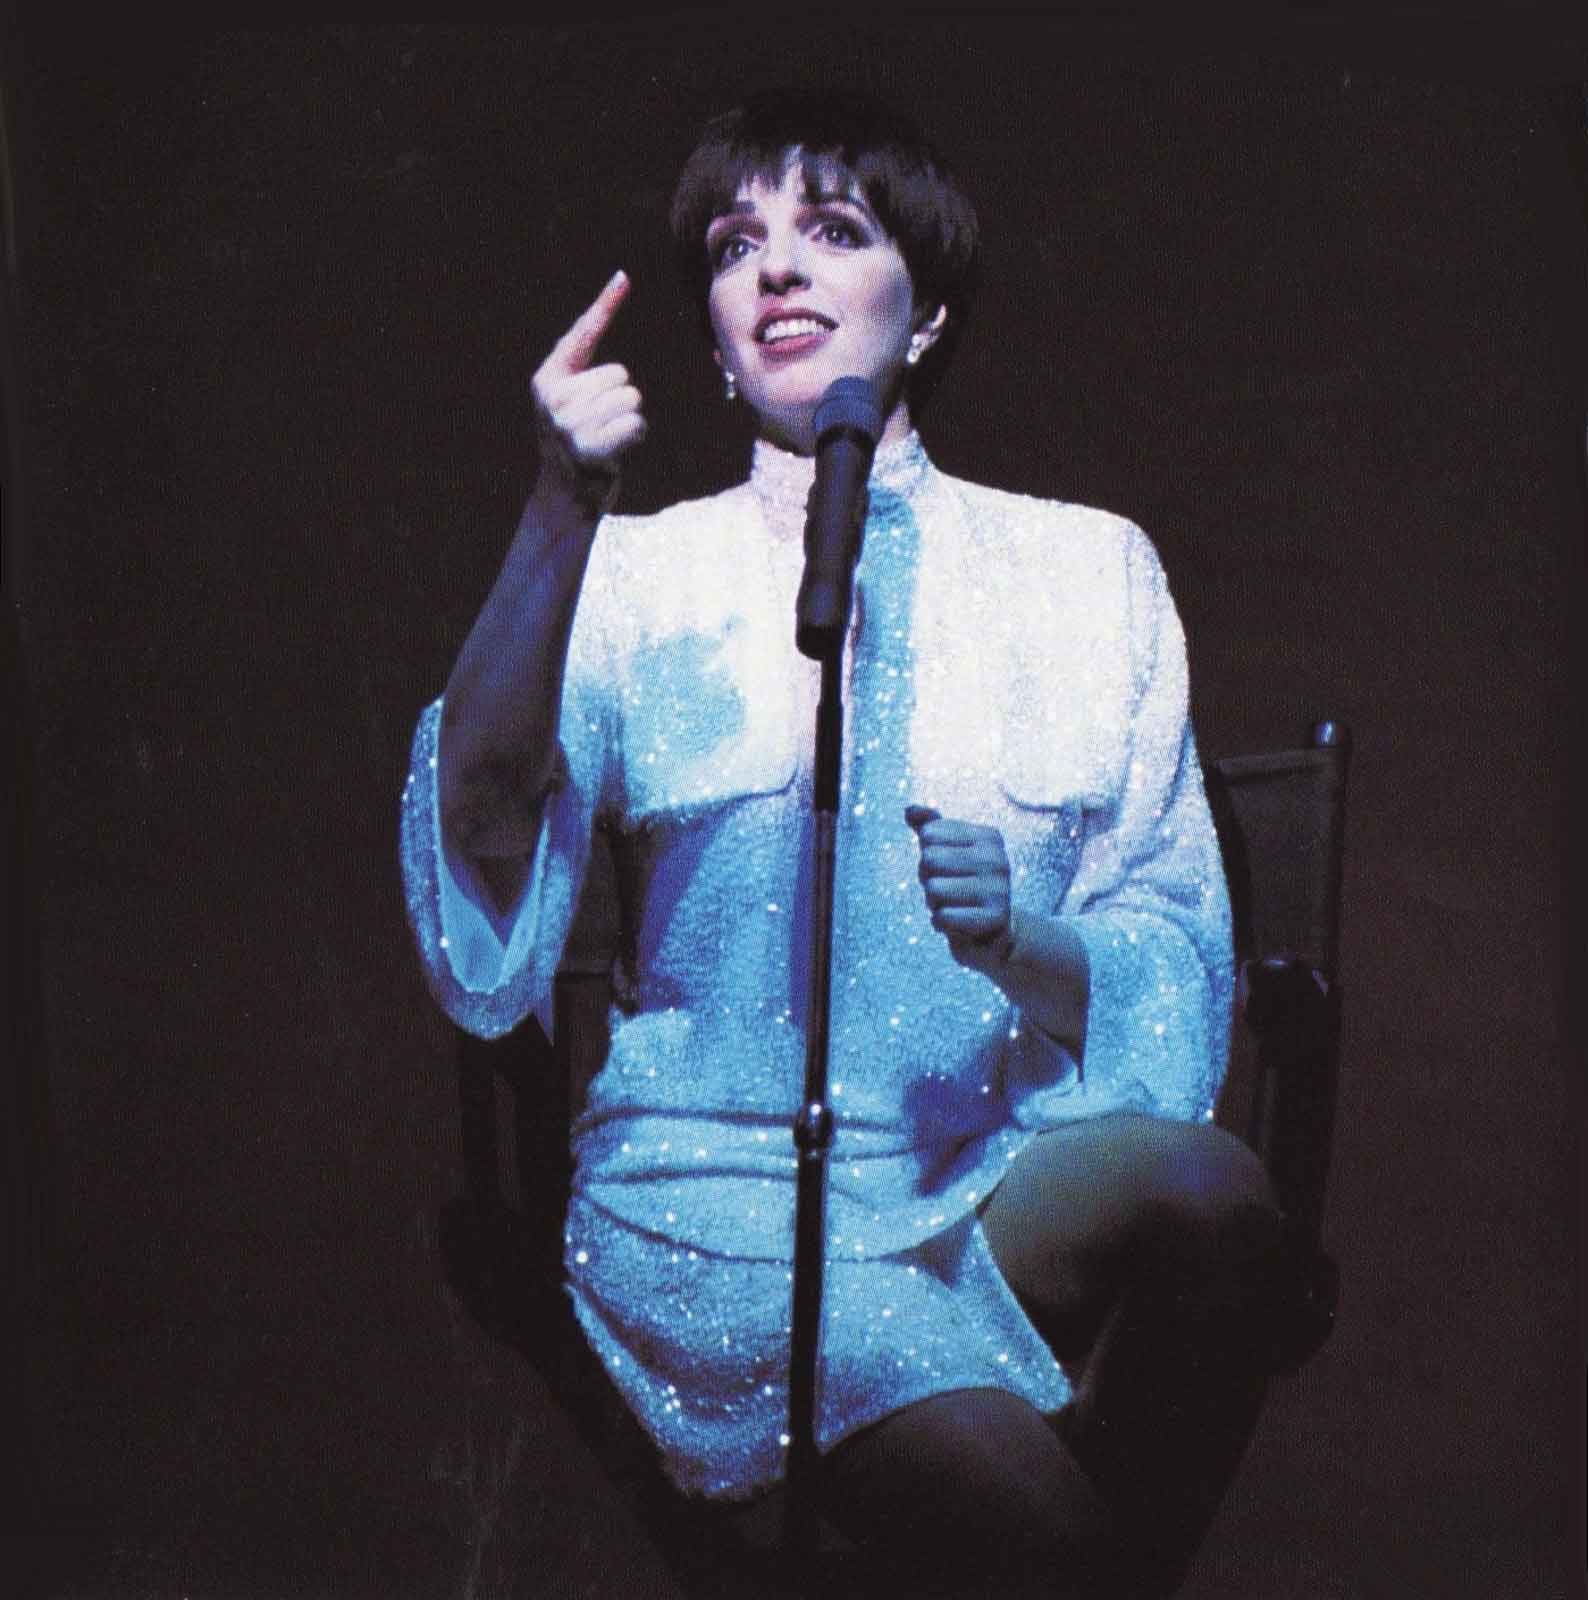 Liza Minnelli is seated on a stool in a white dress (with microphone stand in front of her) and pointing up.